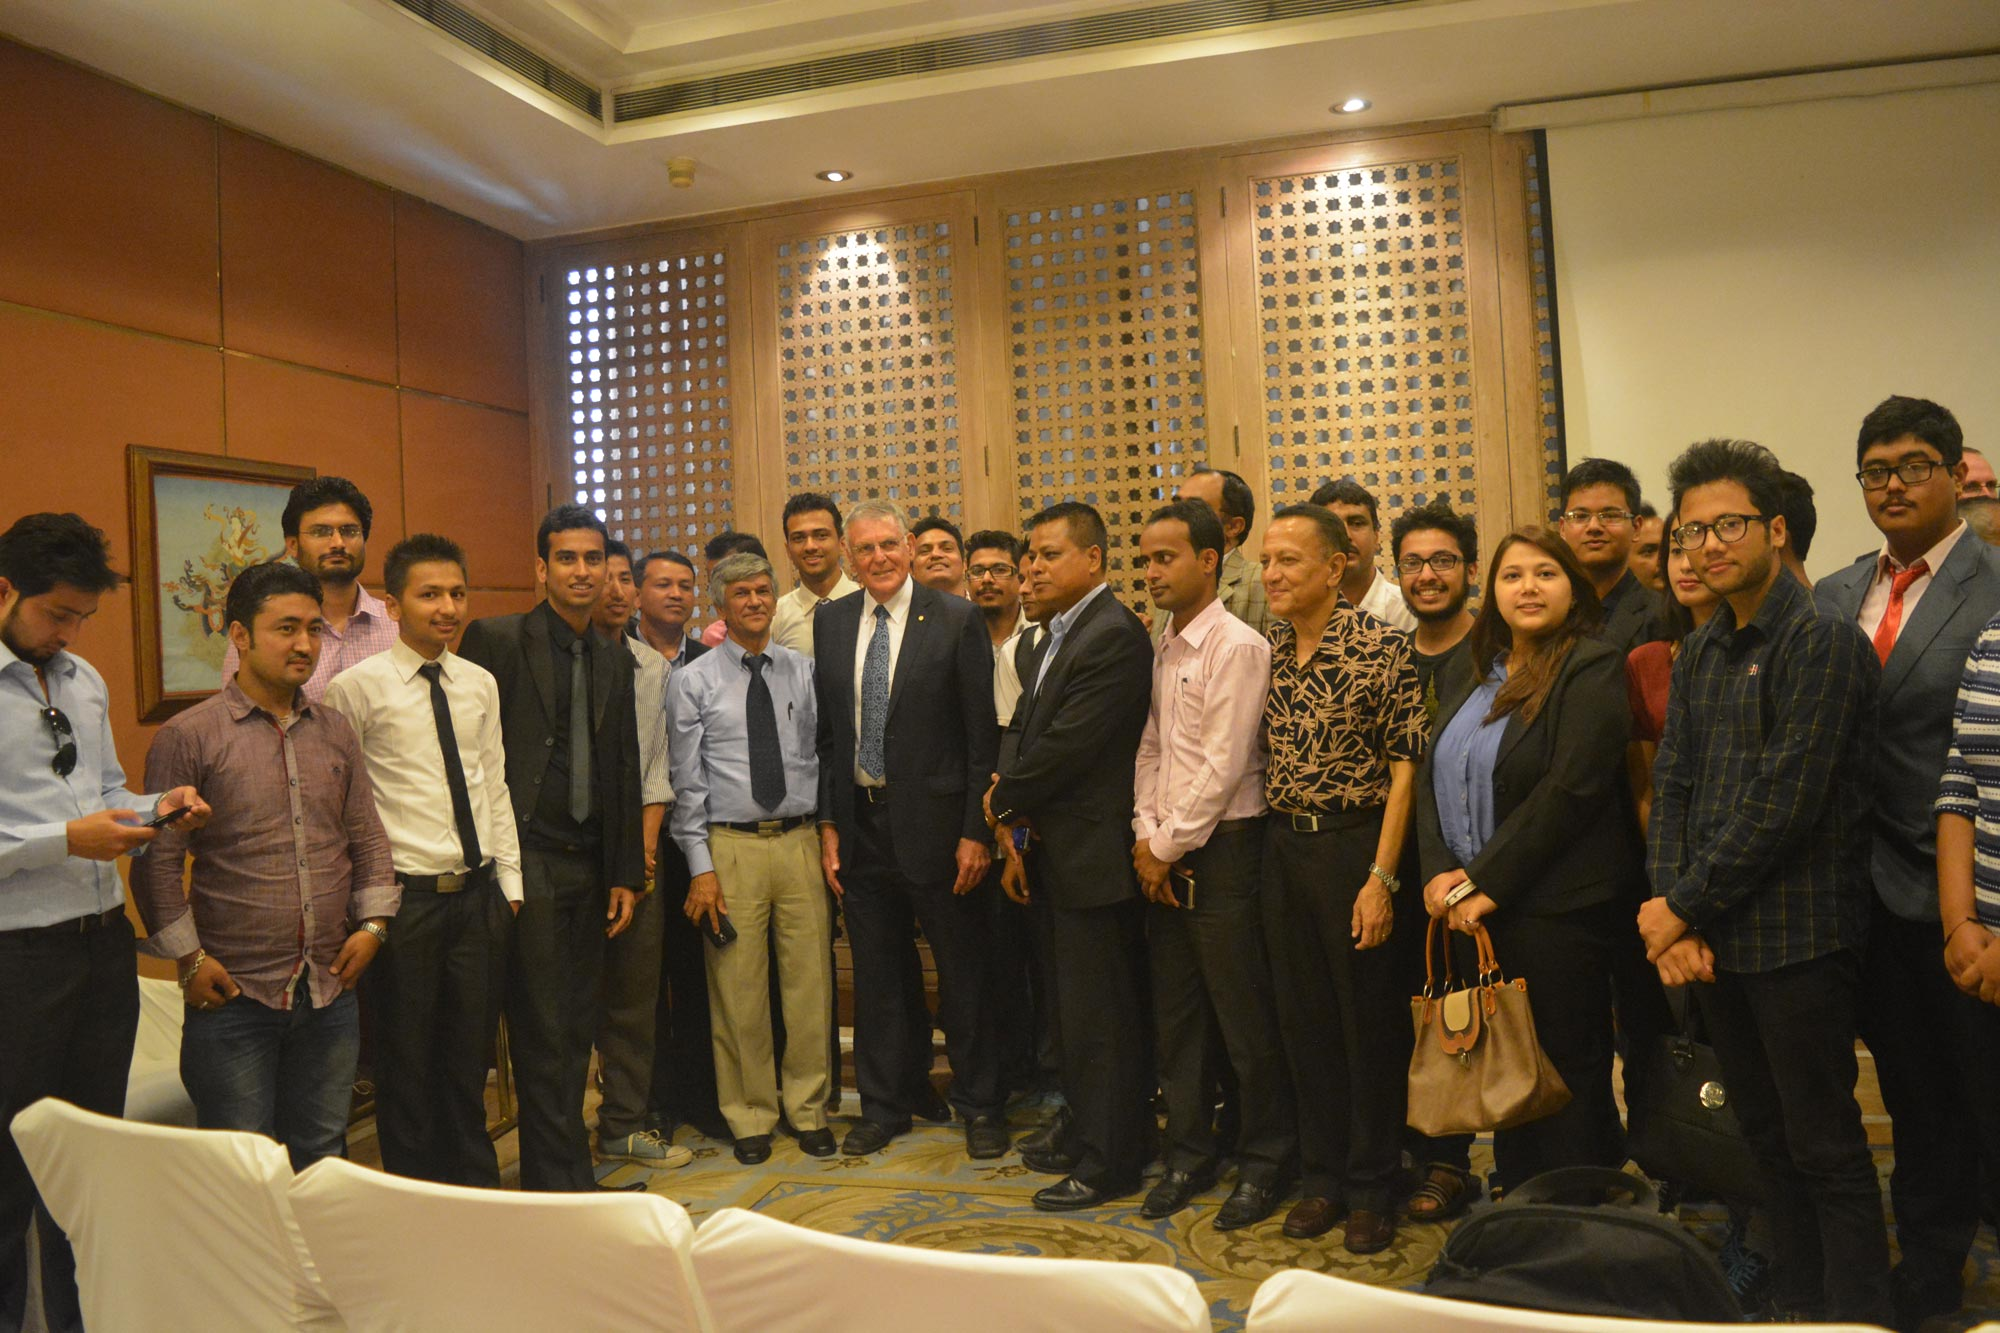 Nobel Laureate Dan Shechtman with attendees of his lecture. Photo: Asian Science Camp Alumni Association